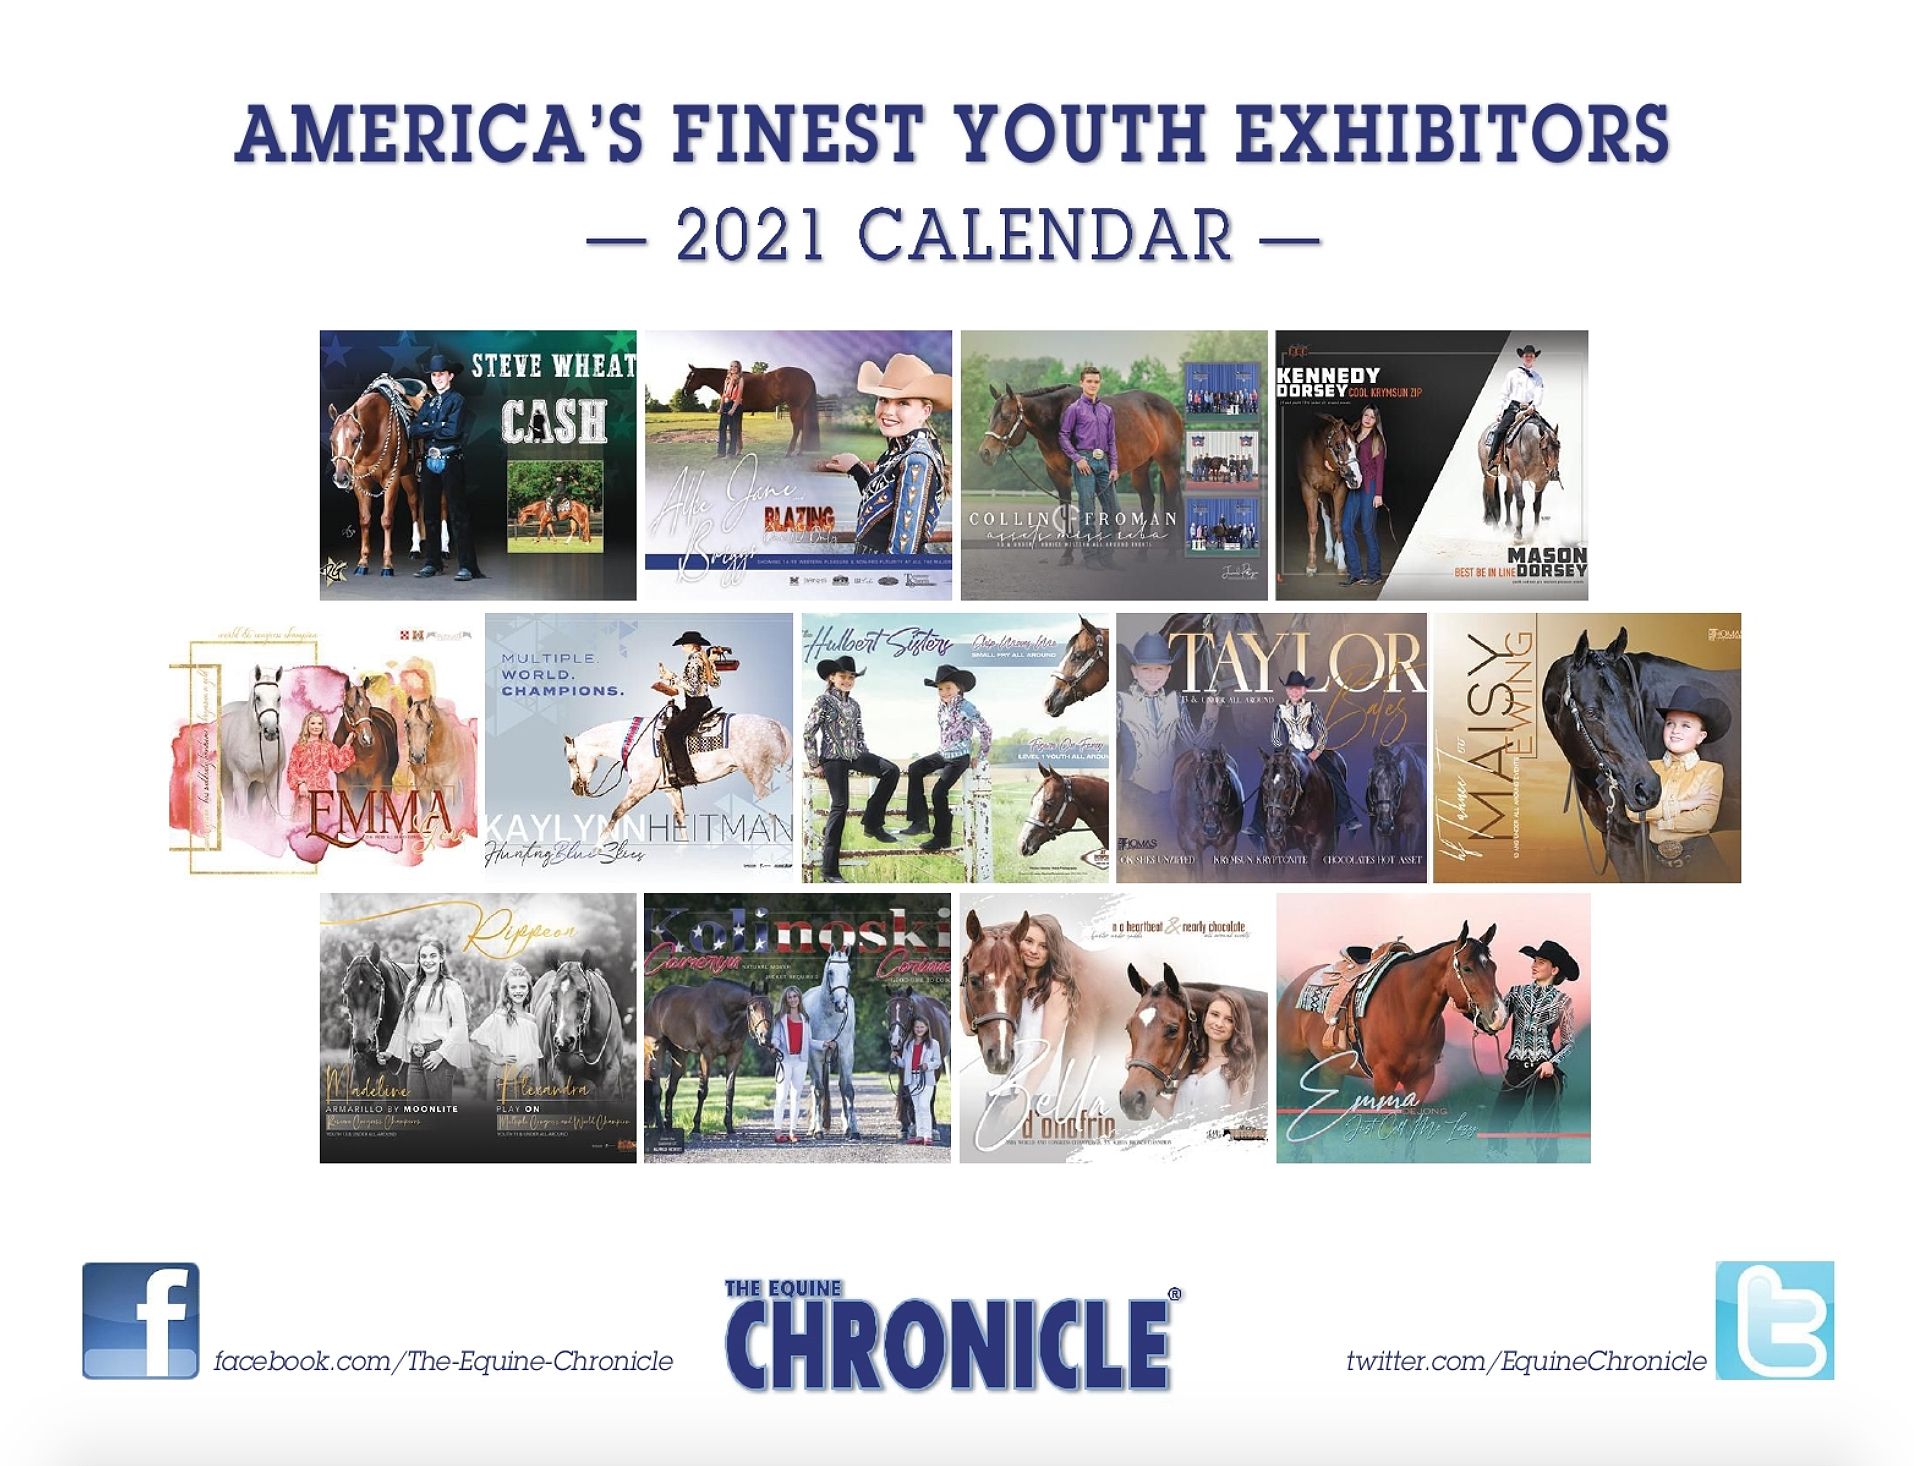 America's Finest Youth Exhibitors 2021 Calendar